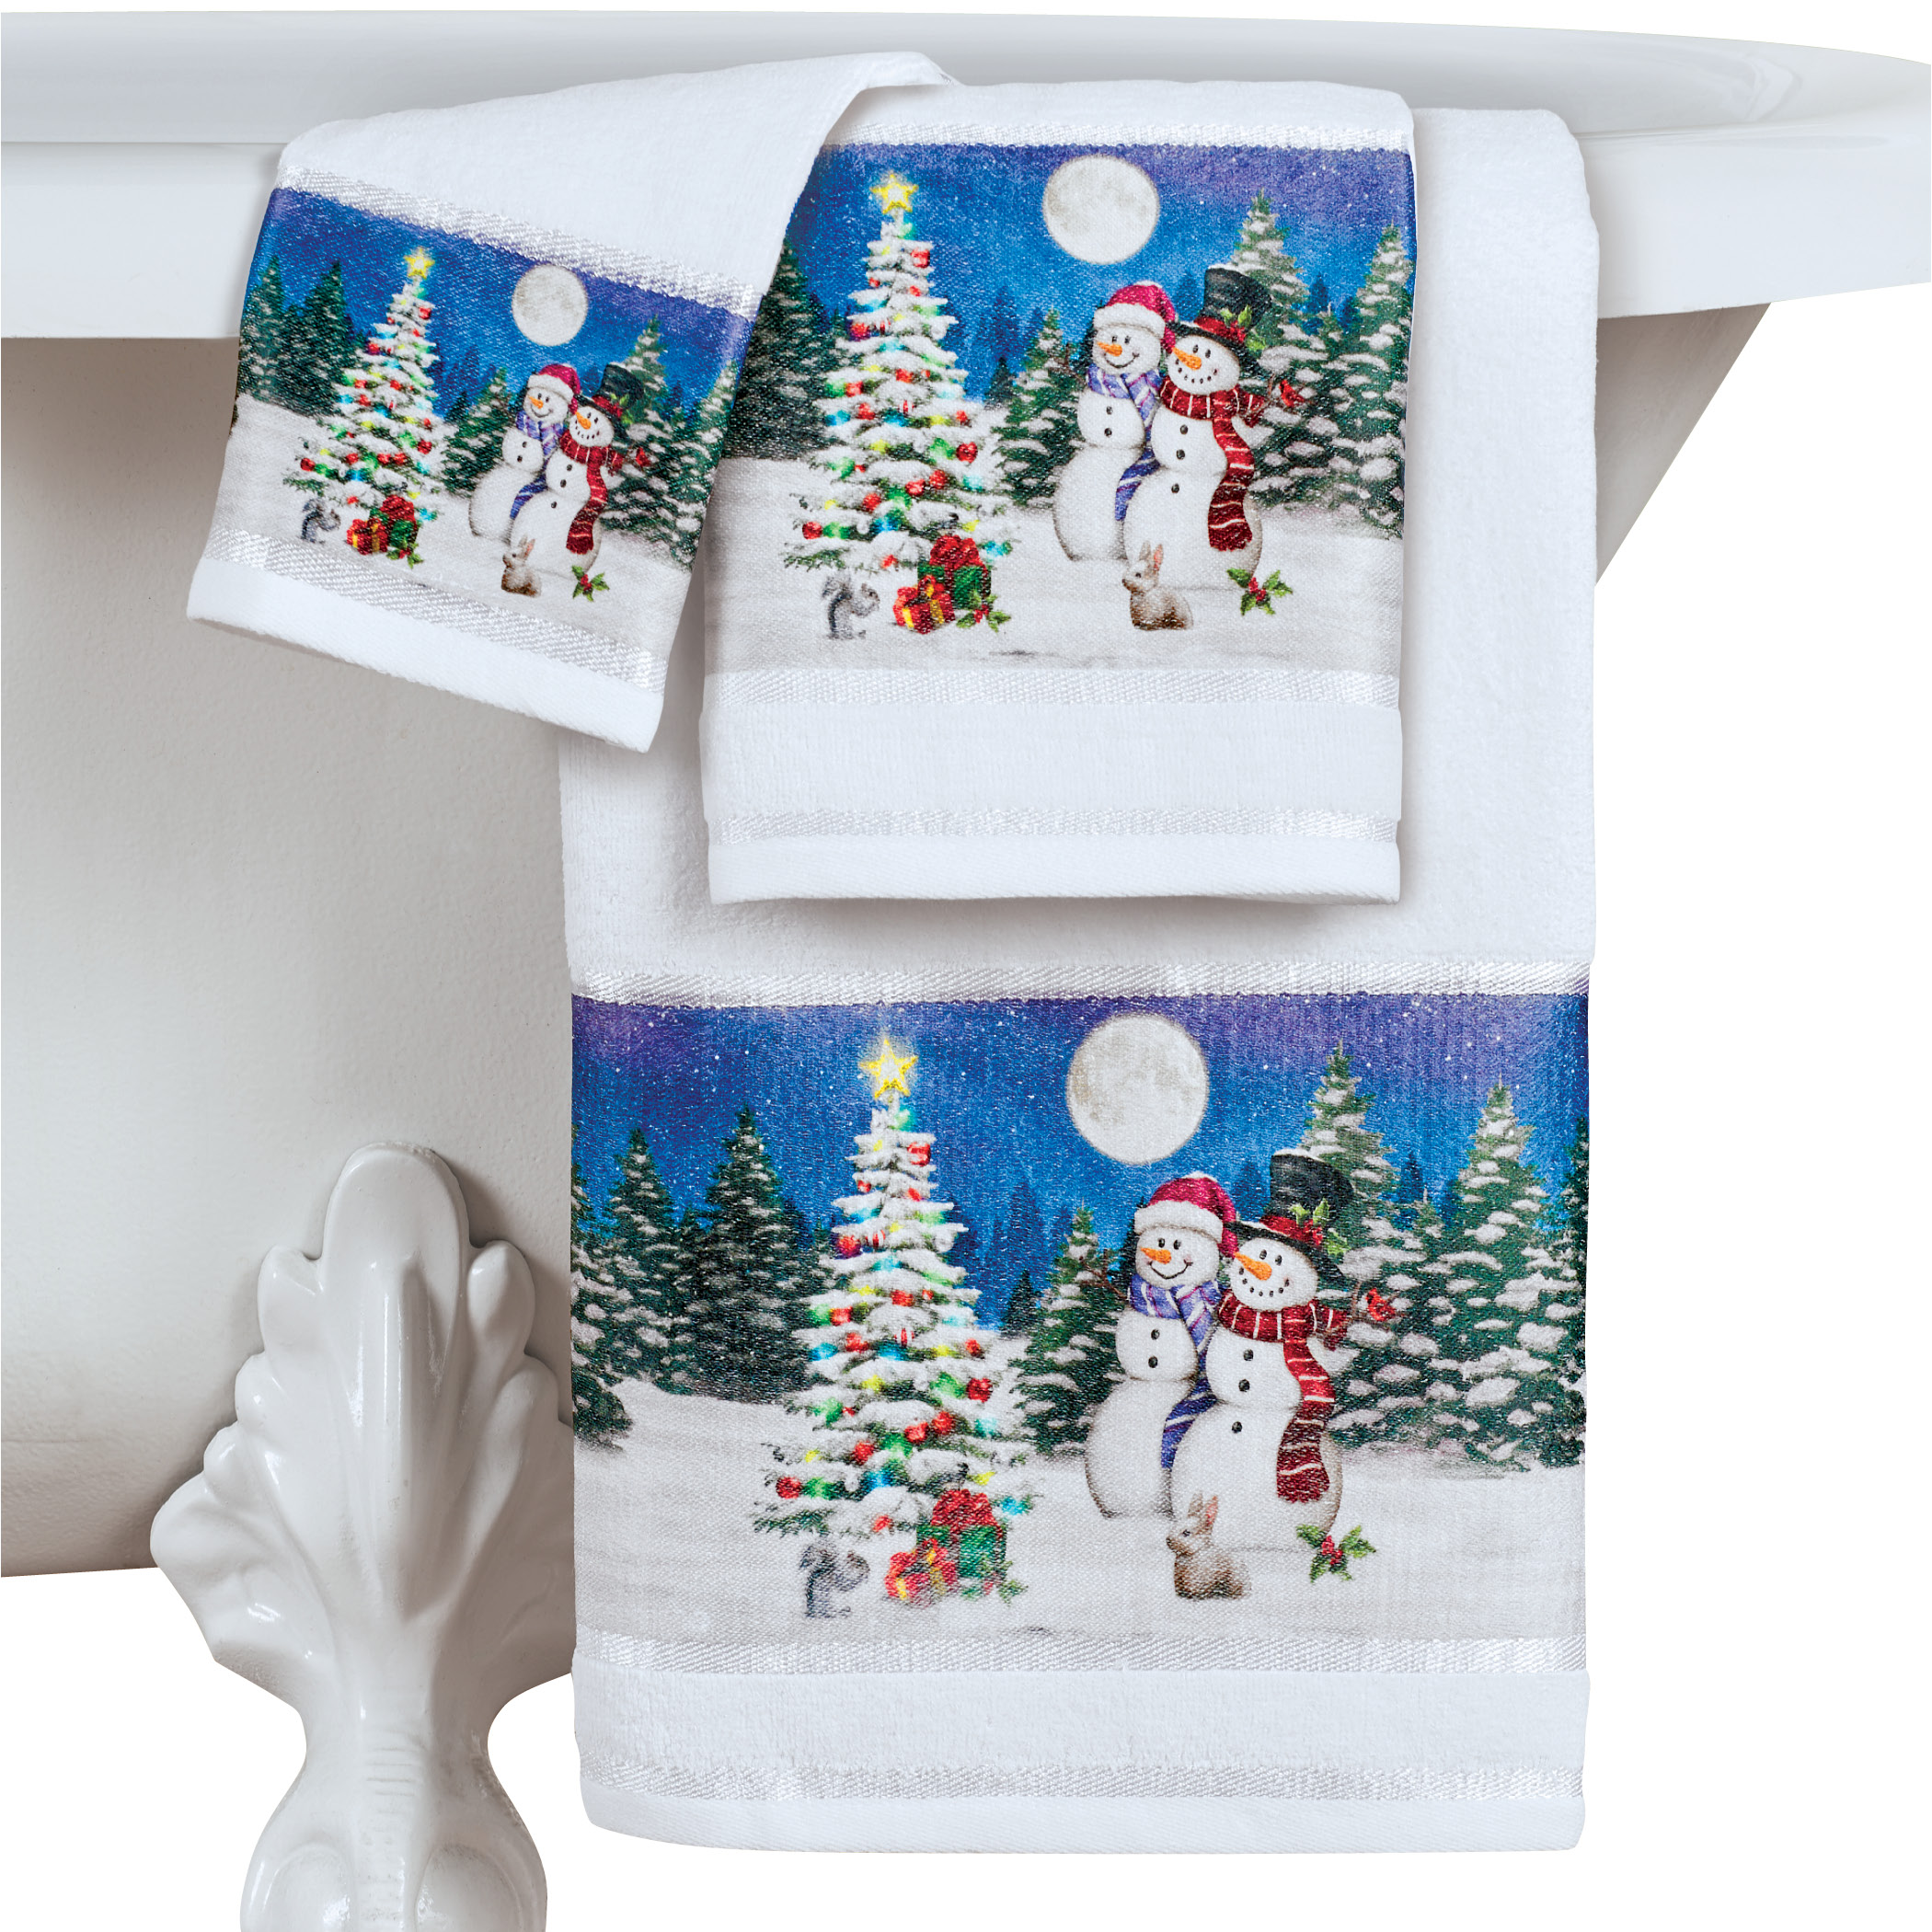 Snowman Couple Holiday Towels - Set of 3 - Festive Holiday ...